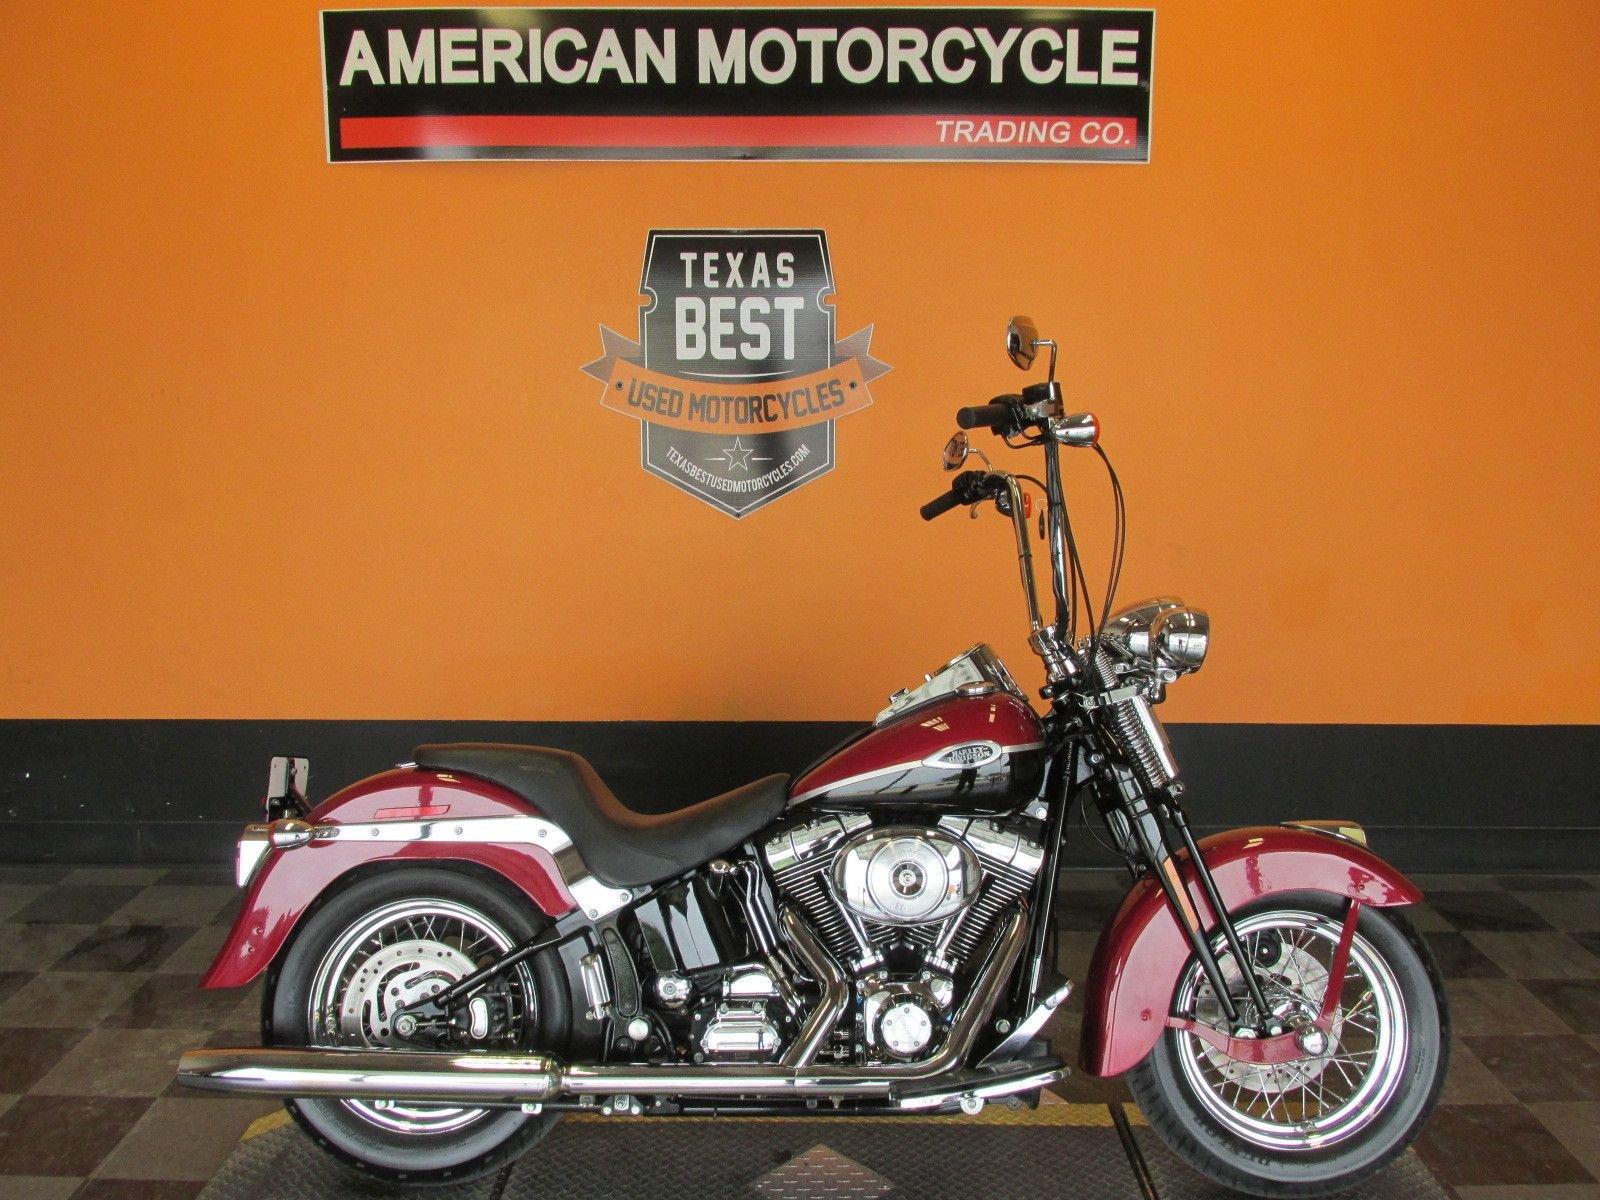 For Sale 2006 Harley-Davidson Softail Heritage Springer